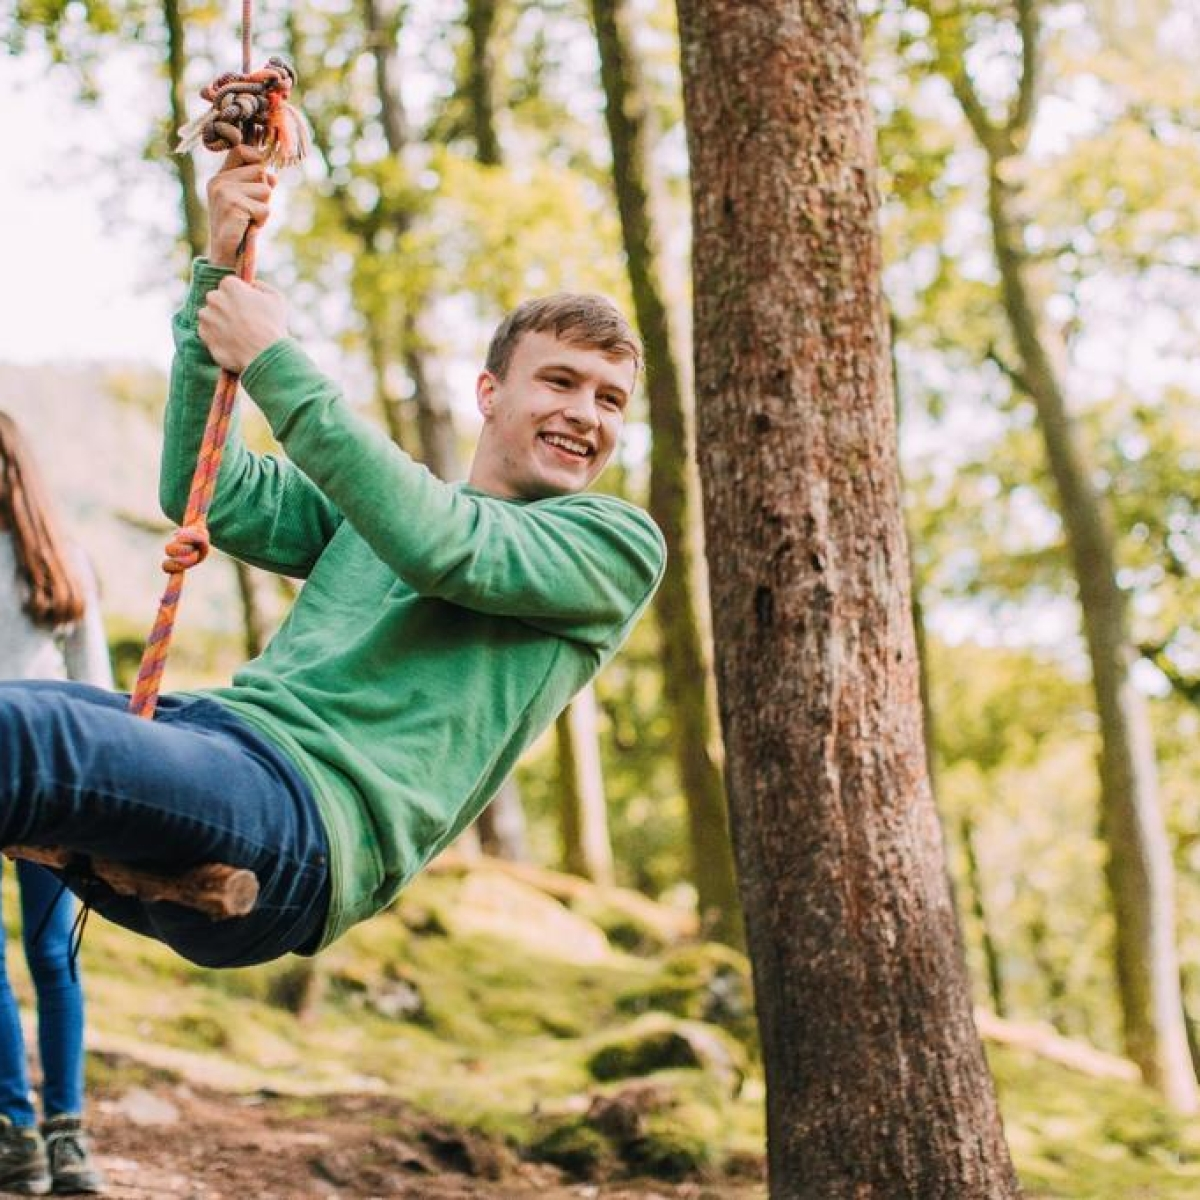 Teens, nature may help lower your exam stress